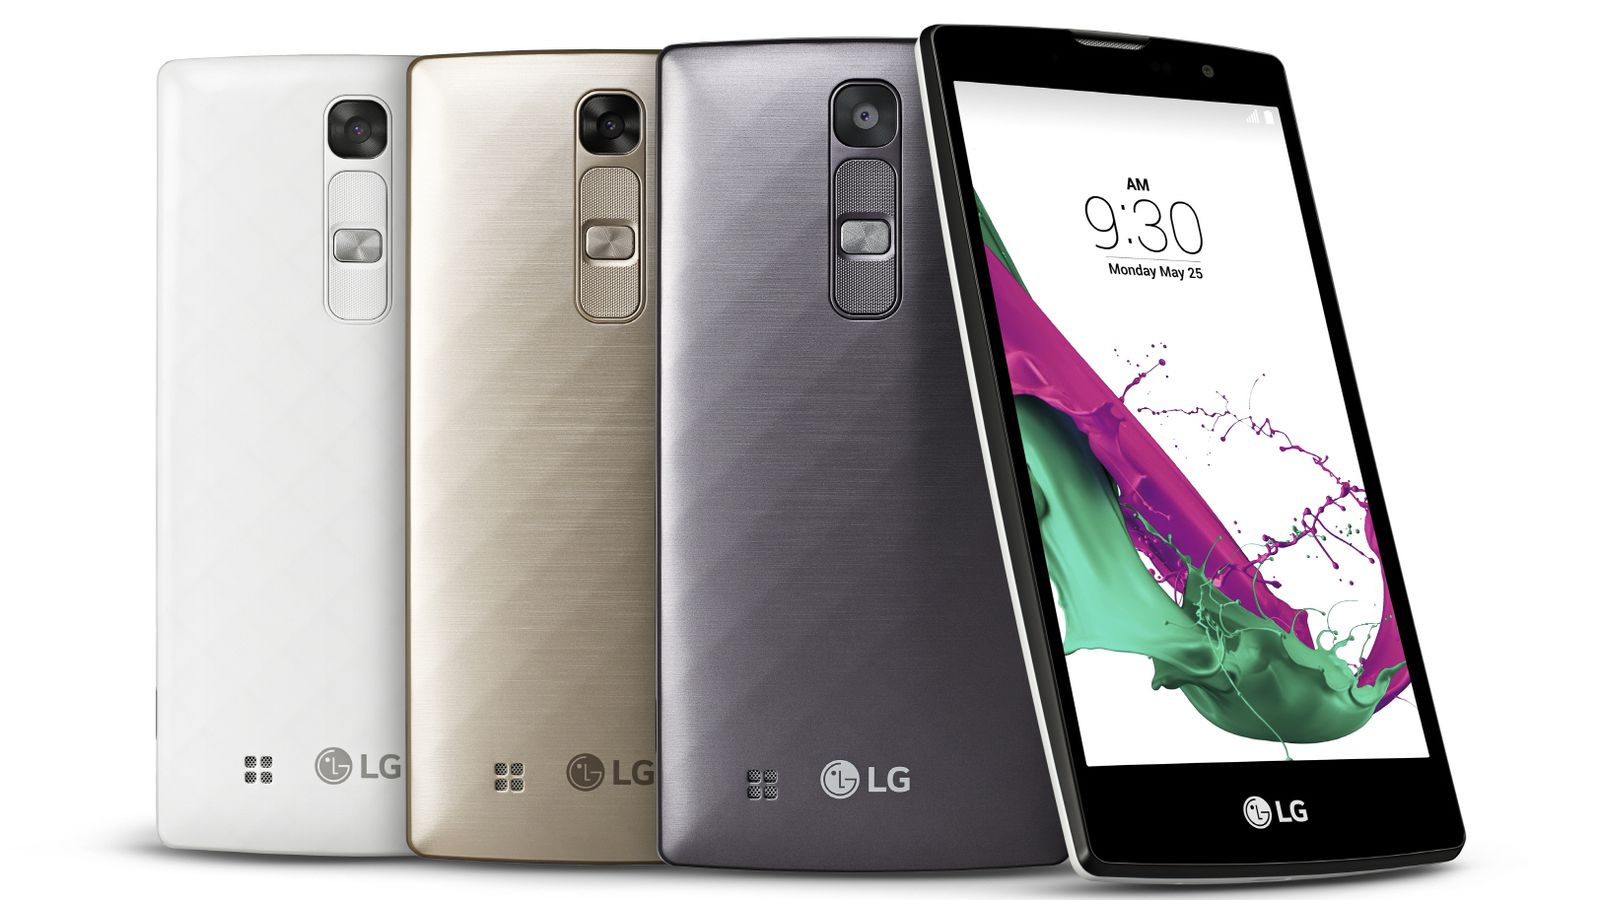 LG adds to the G4 family with two new mid-range devices: the G Stylo and G4c | The Verge